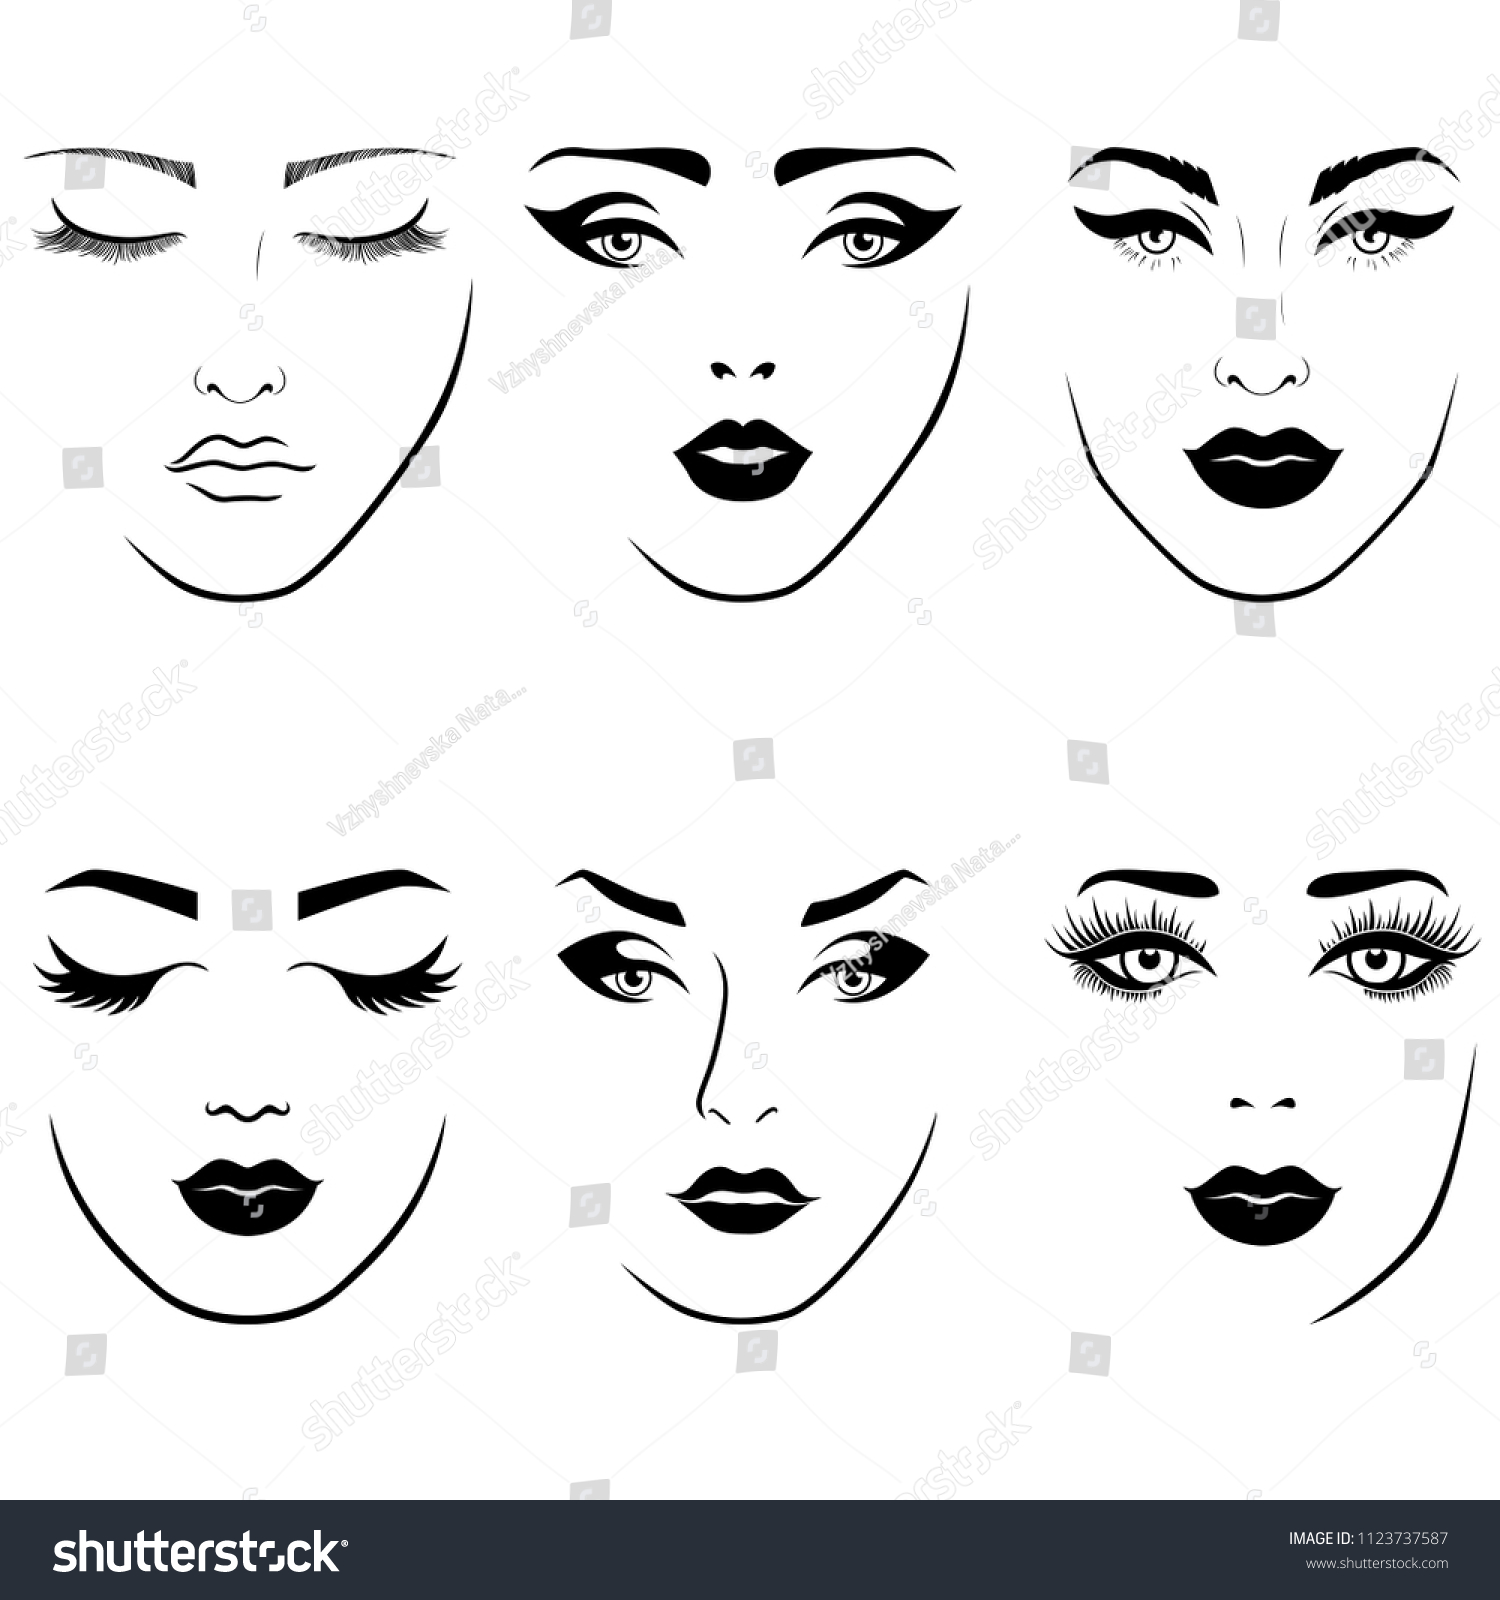 Set of fashionable stylized womens faces with distinctive eyes and lips vector illustration as face